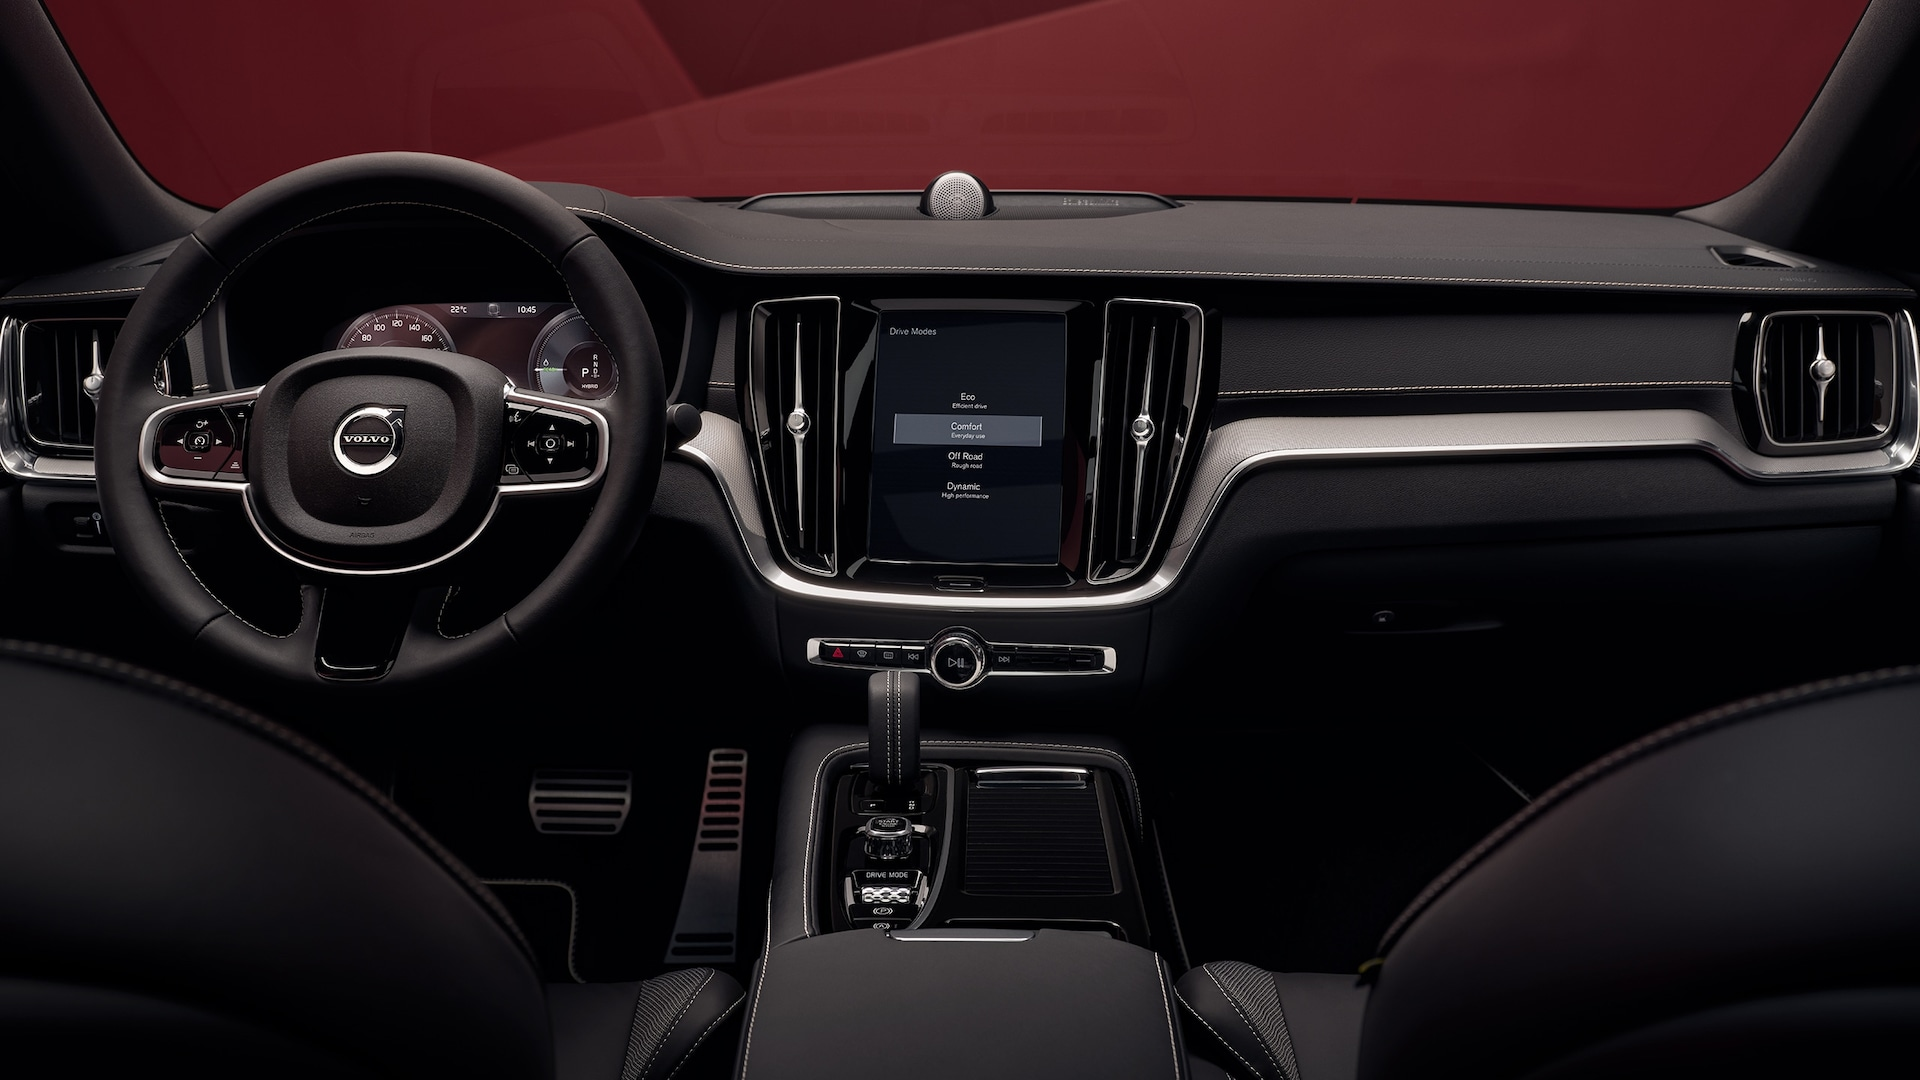 Black interior of a Volvo S60 Sedan